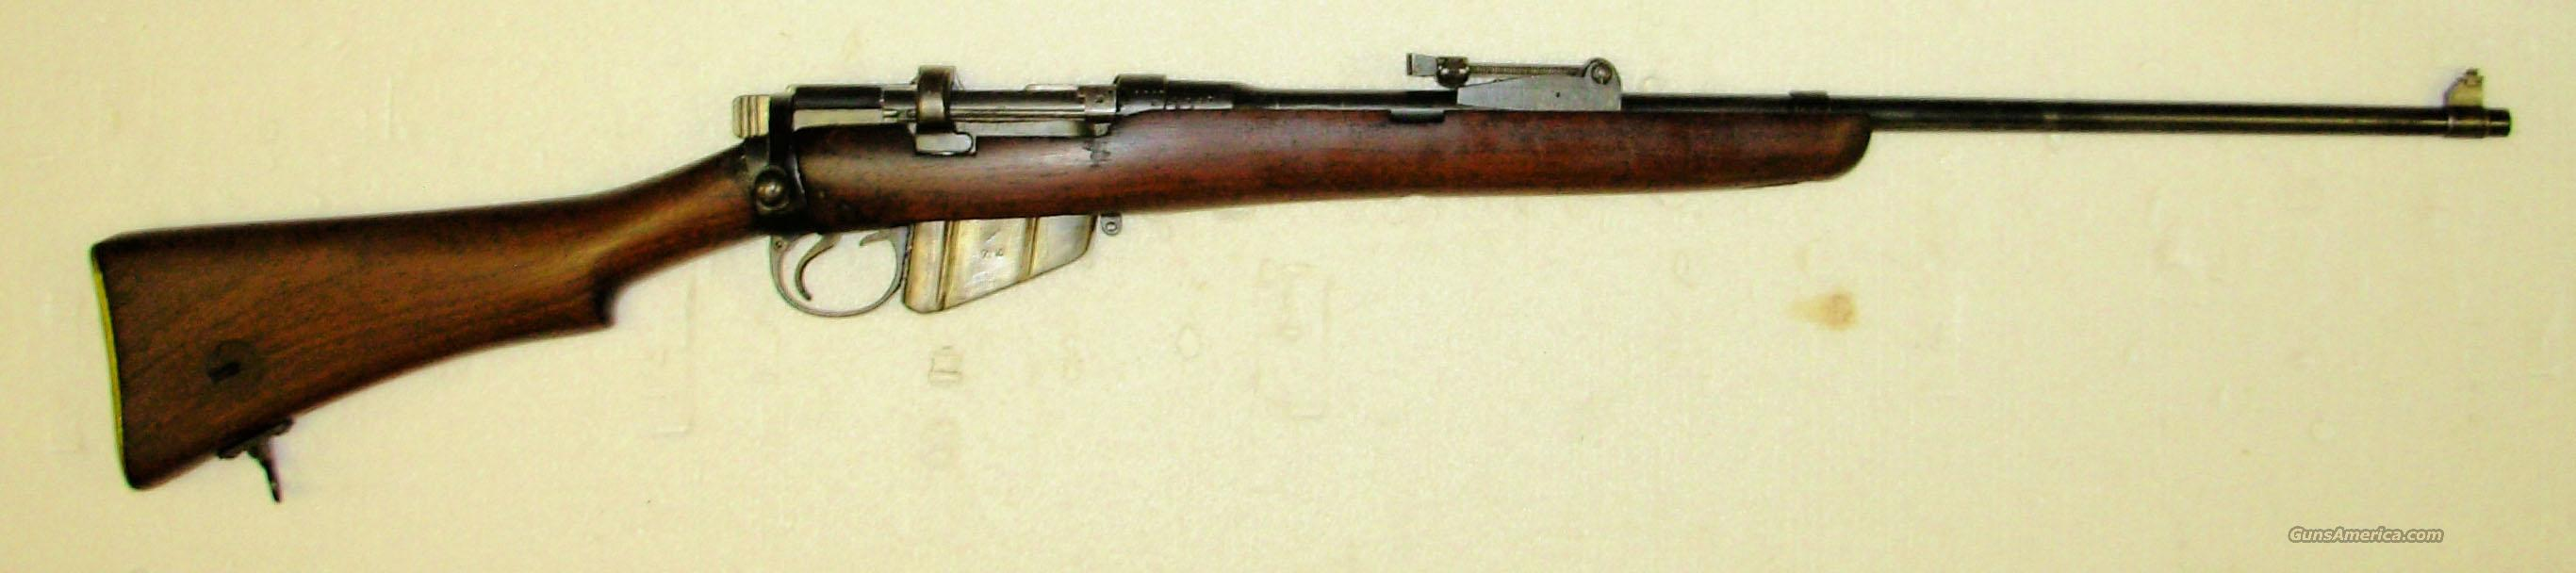 ENFIELD MKIII ****  .303  **** DATED 1918  ****  $299.00  Guns > Rifles > Enfield Rifle